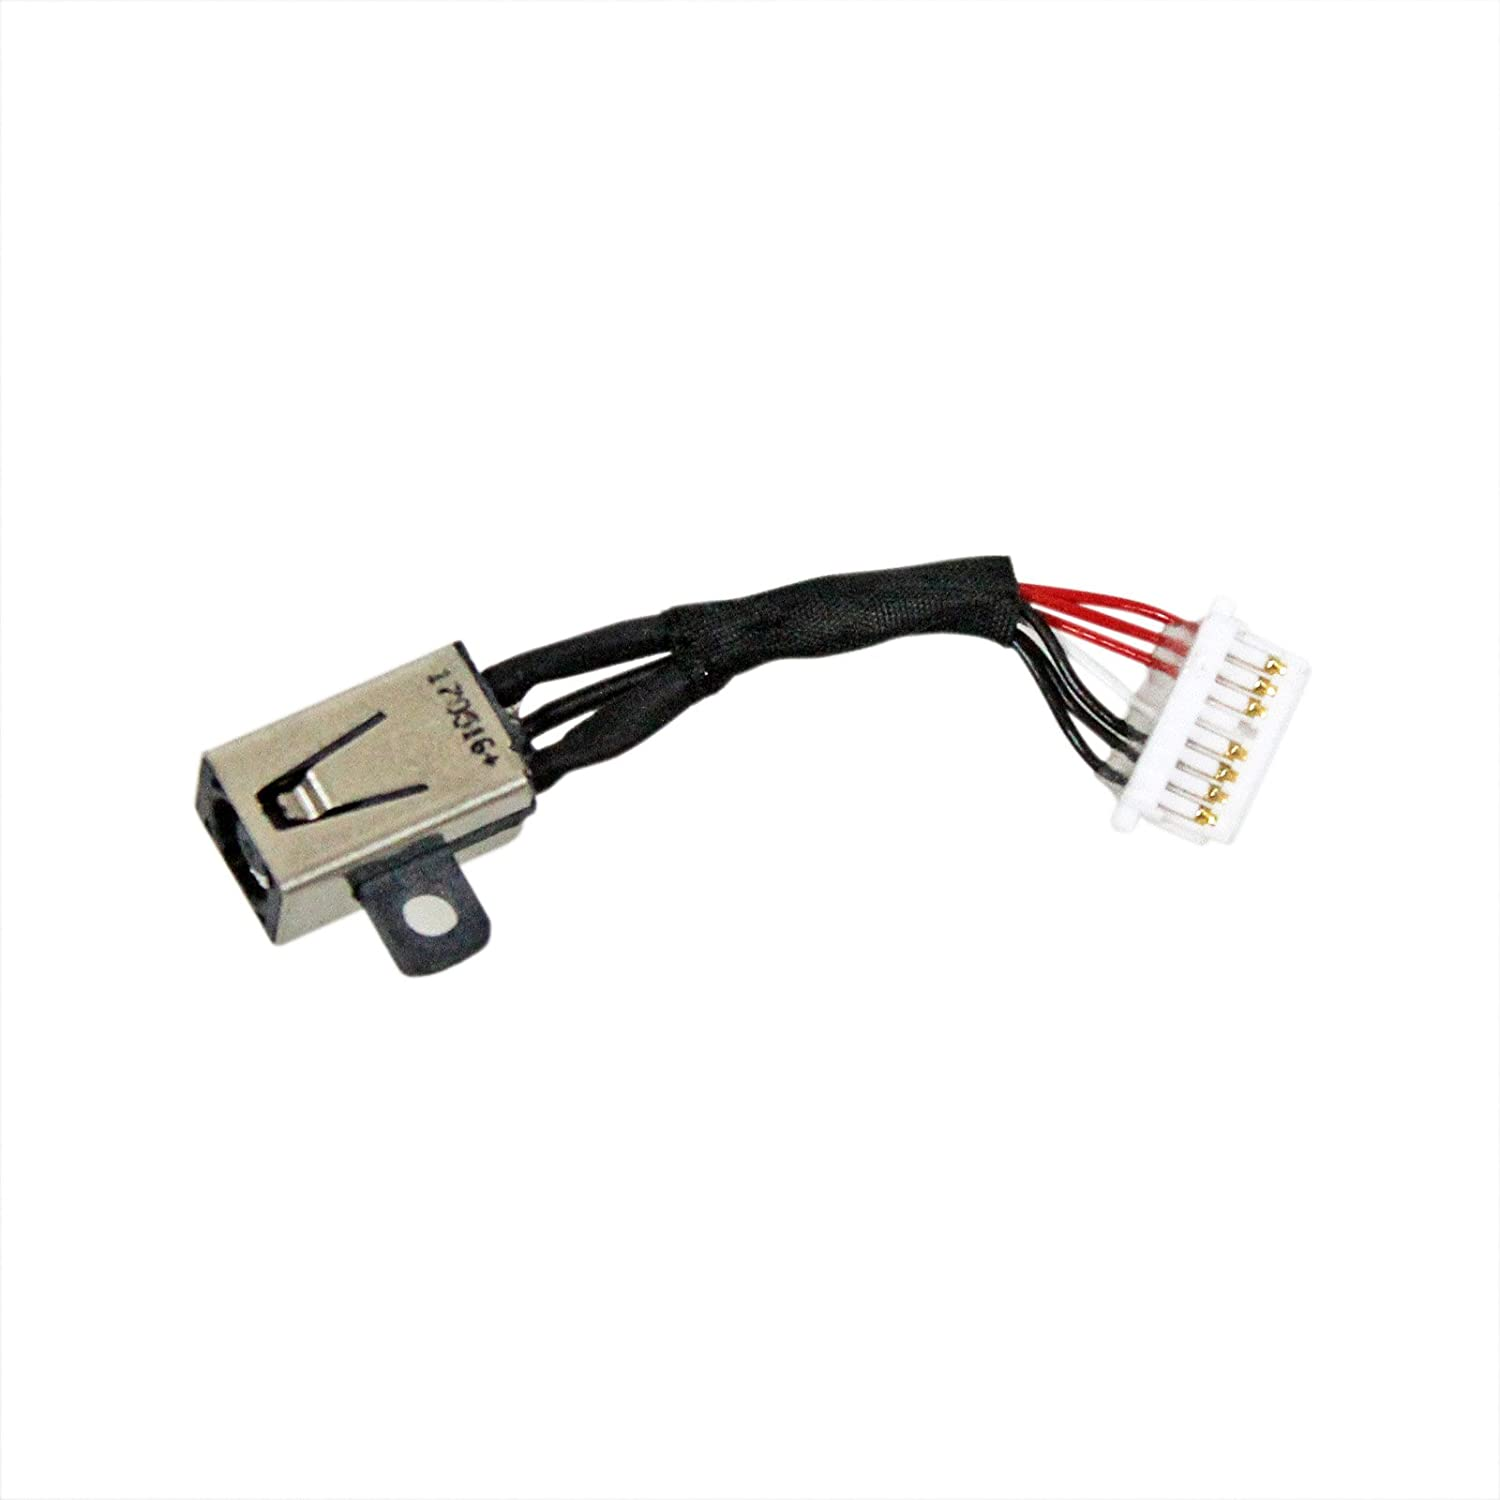 Zahara DC Power Jack Harness Cable Replacement for Dell Inspiron 13 7000 7347 7348 7352 7353 7359 7368 7378 7558 7568 7569 7579 450.07R03.000